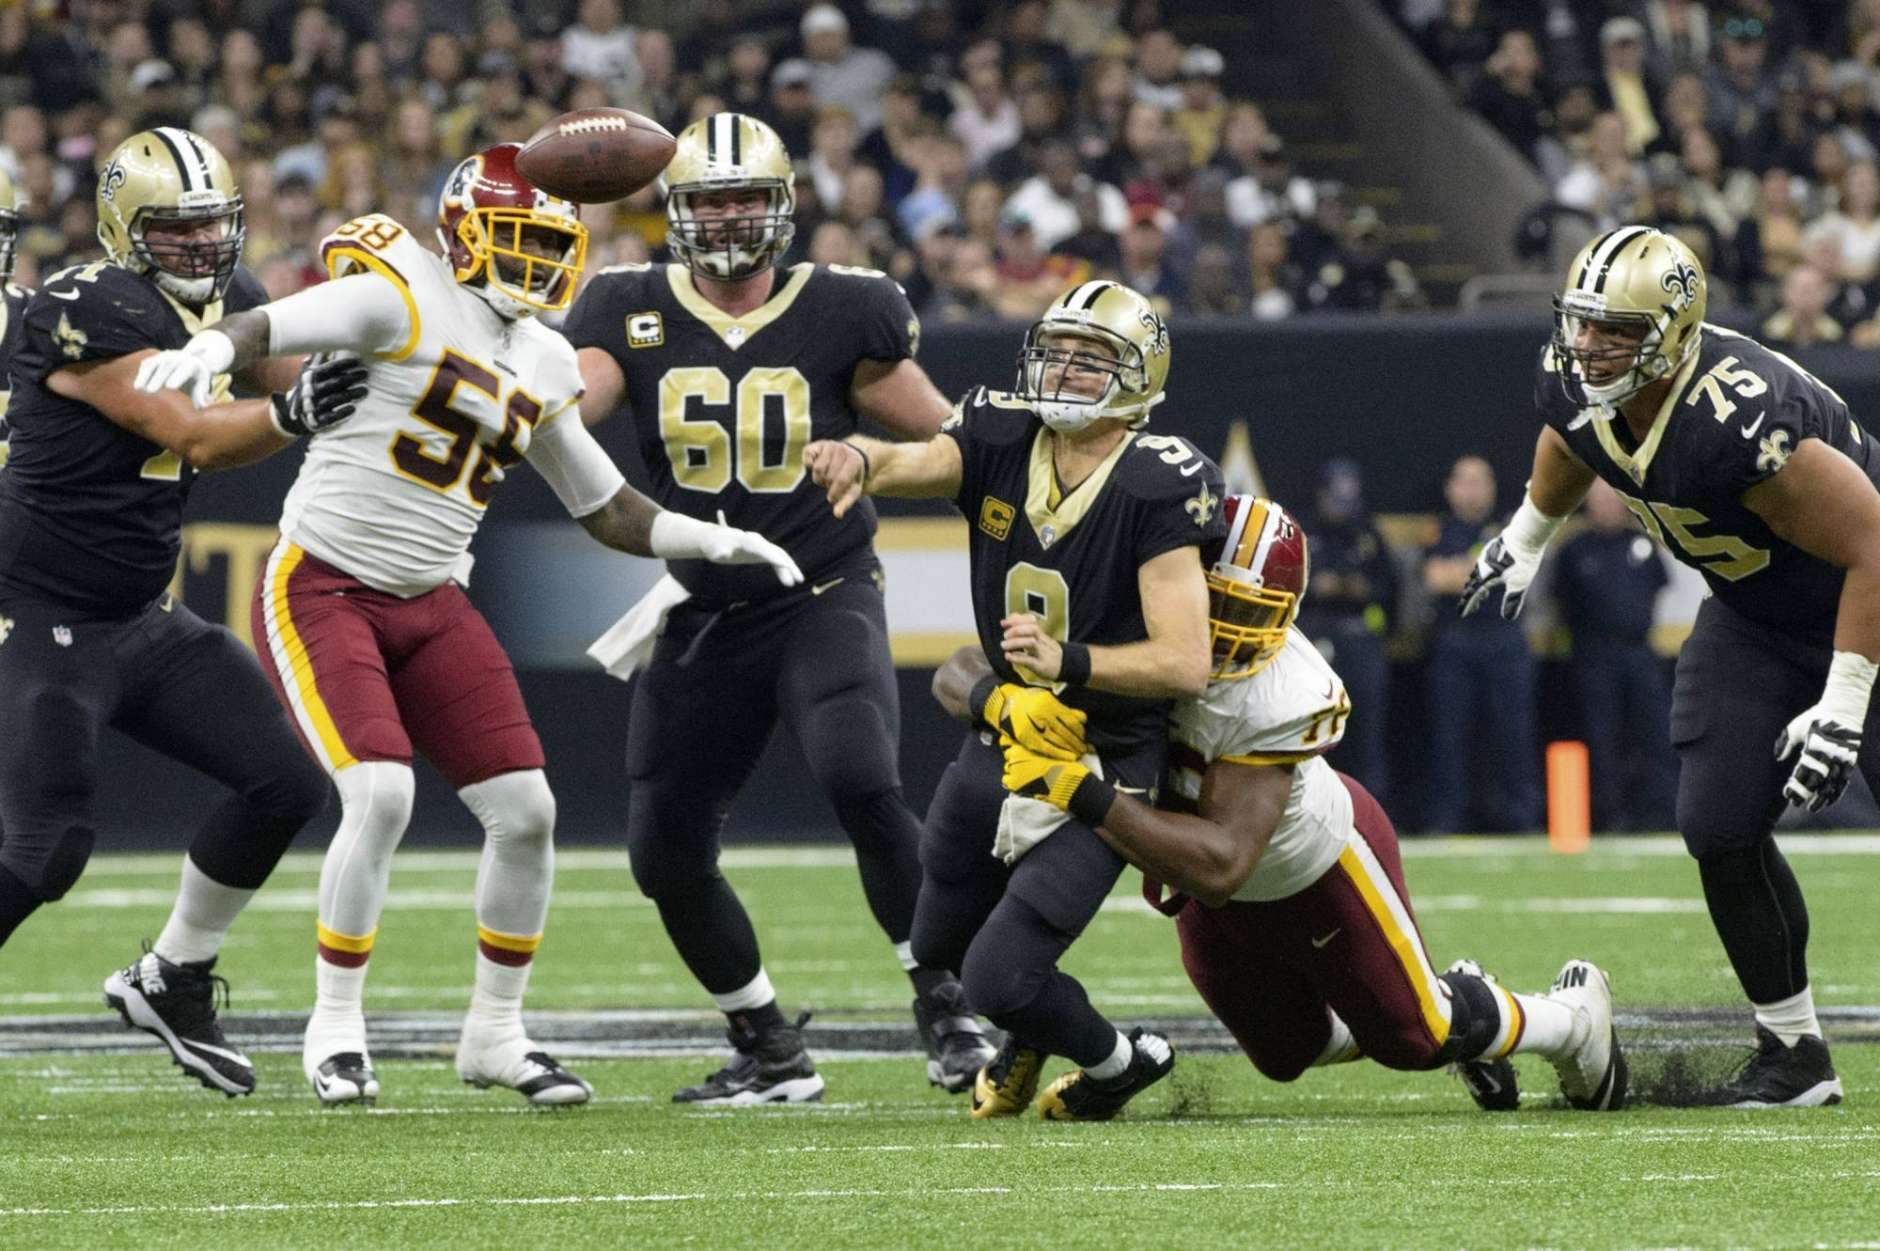 Saints quarterback Drew Brees is hit as he throws a pass during an NFL football game as The New Orleans Saints take on The Washington Redskins in the Mercedes-Benz Superdome, Sunday, Nov. 19, 2017 in New Orleans.   (Scott Clause/The Daily Advertiser via AP)